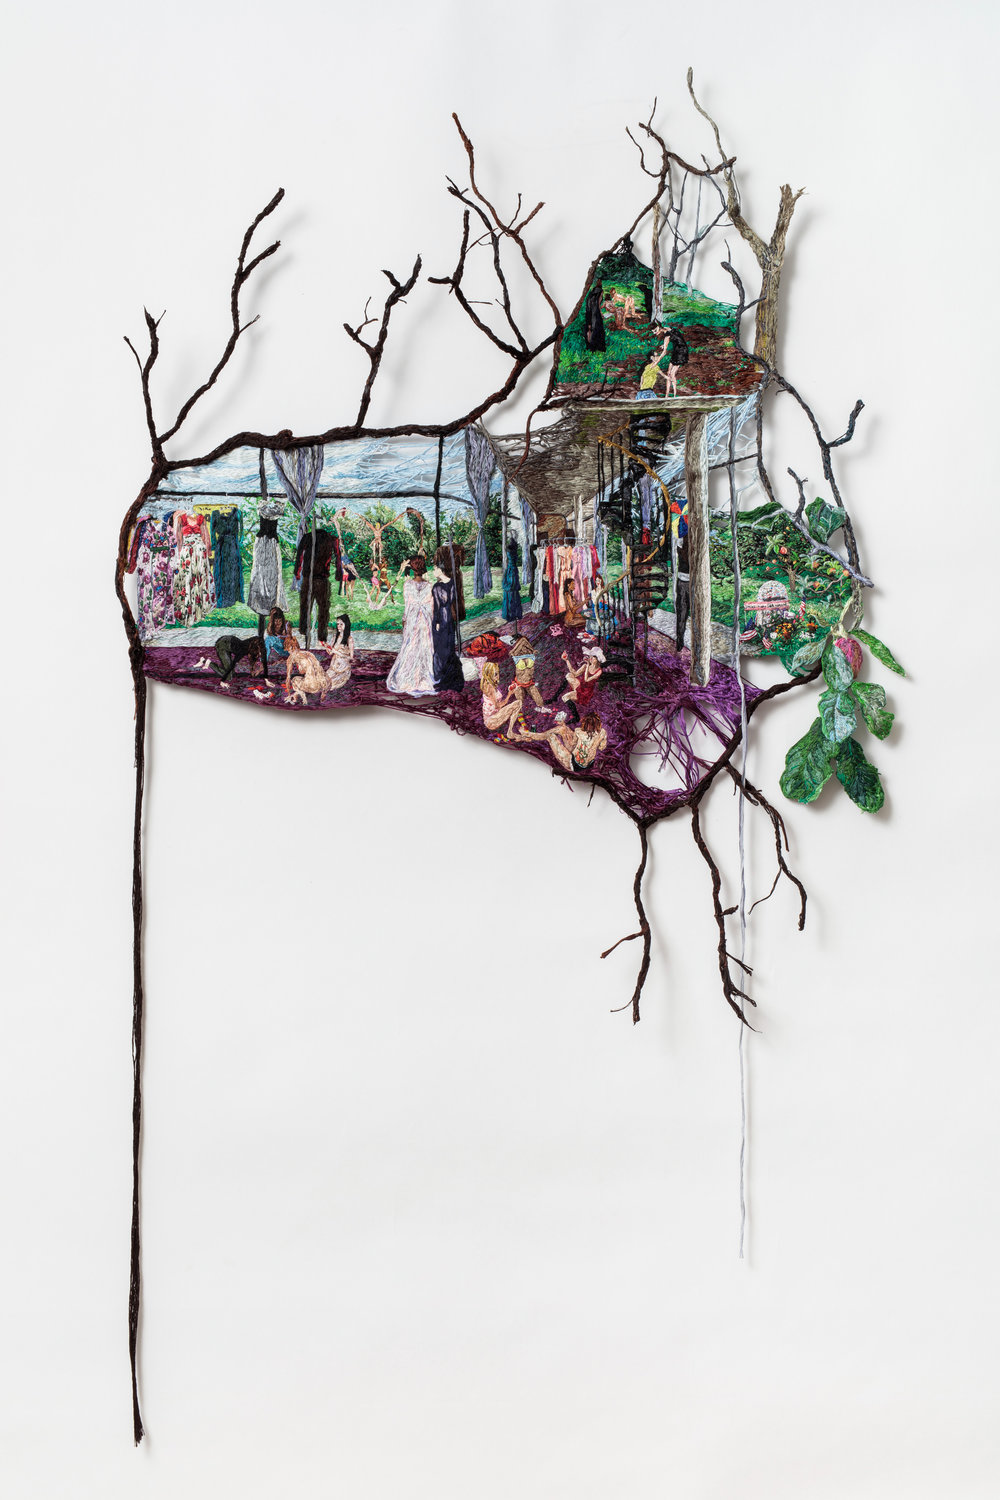 So Many Hopes , Sophia Narrett, 2016-17, Embroidery Thread, Aluminum, and Fabric, 33 x 53 in